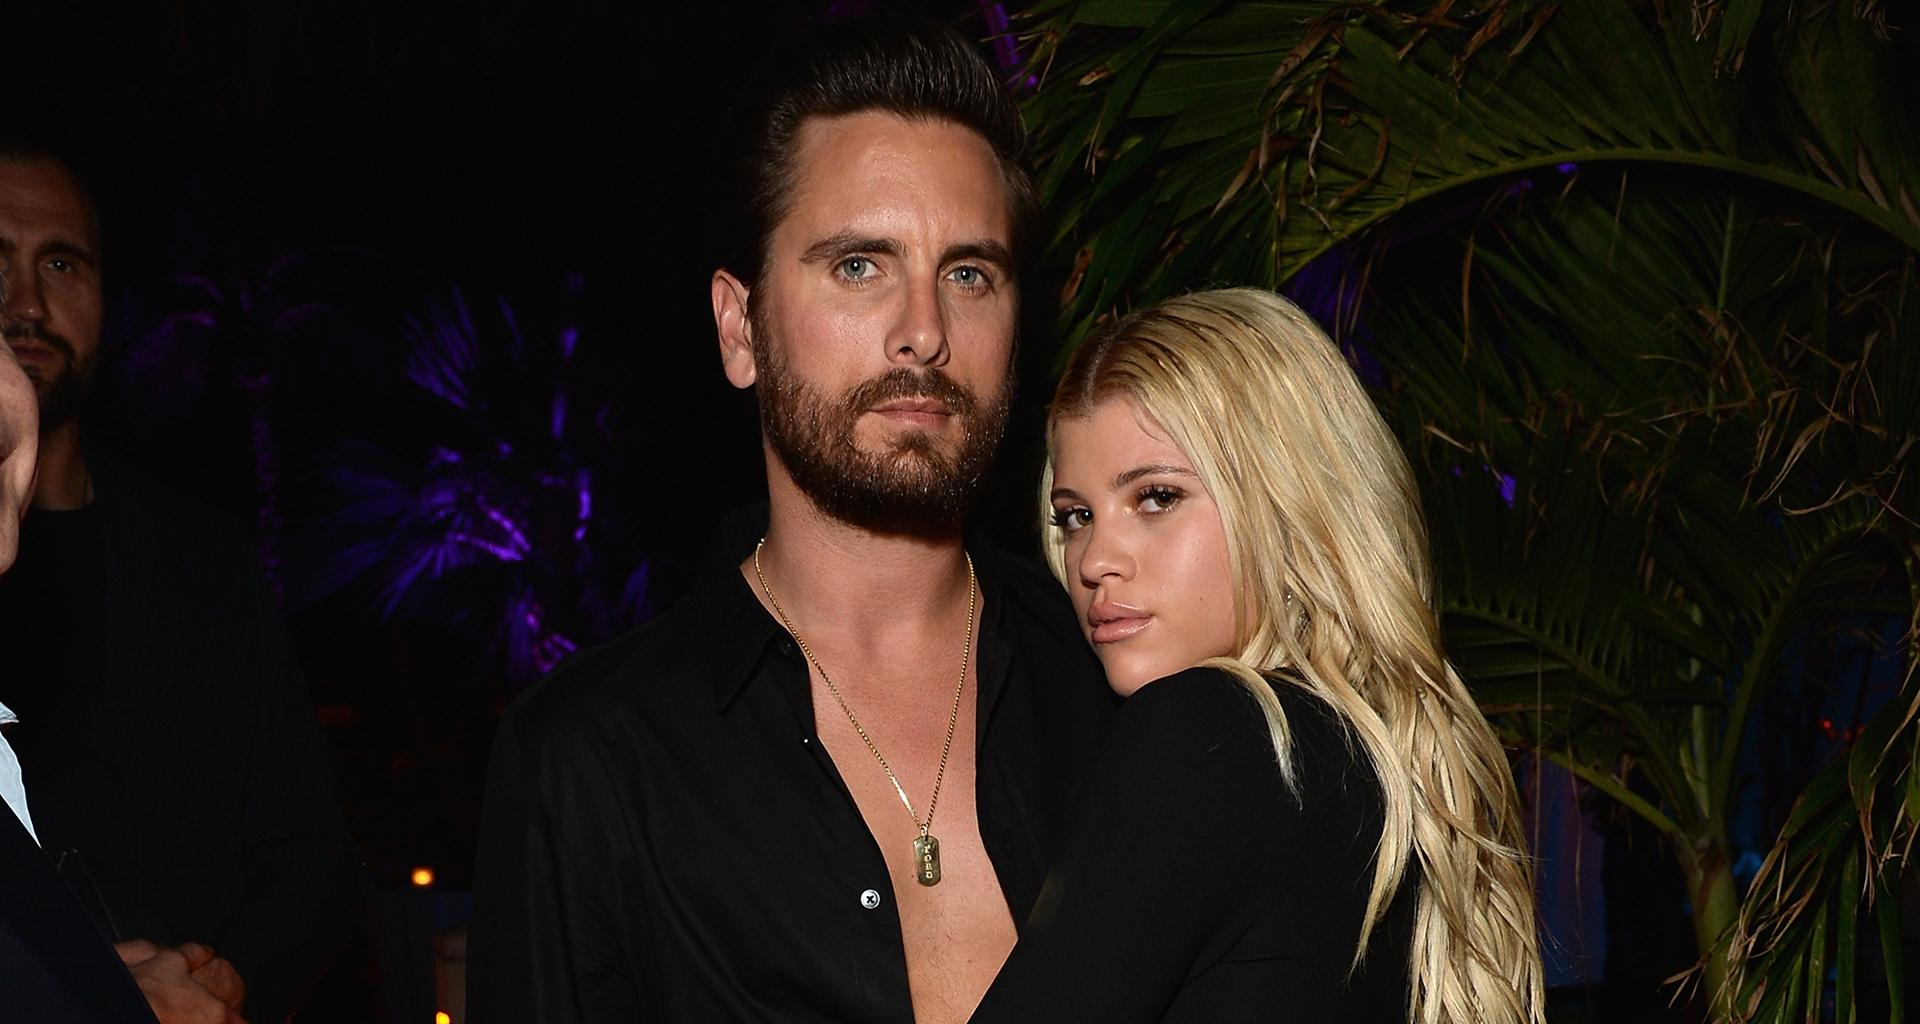 Kourtney Kardashian - Here's How The KUWK Star Reacted When She Learned Scott Disick And Sofia Richie Moved In Together!